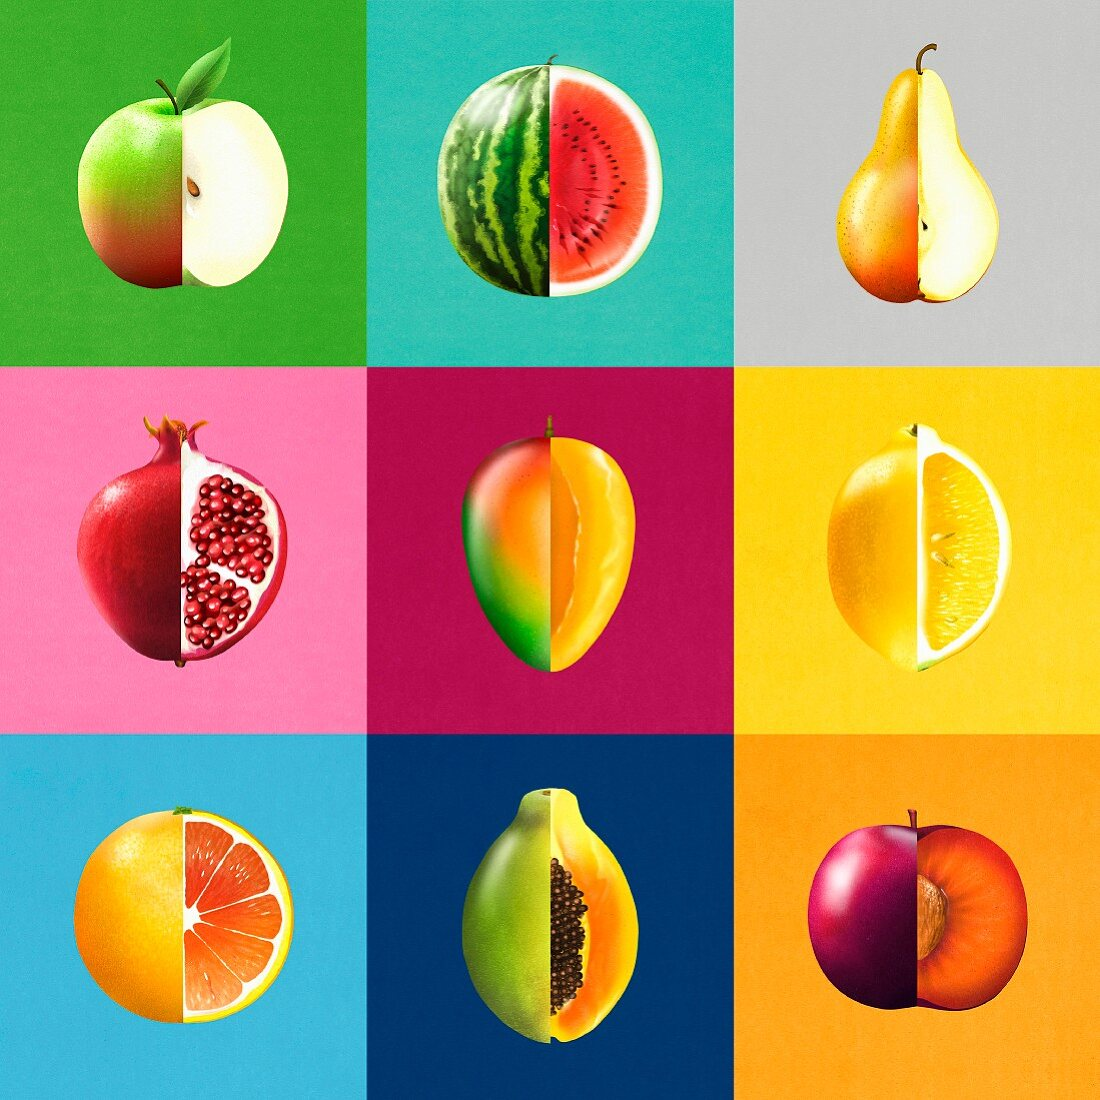 Montage of rows of bisected fruit showing cross sections